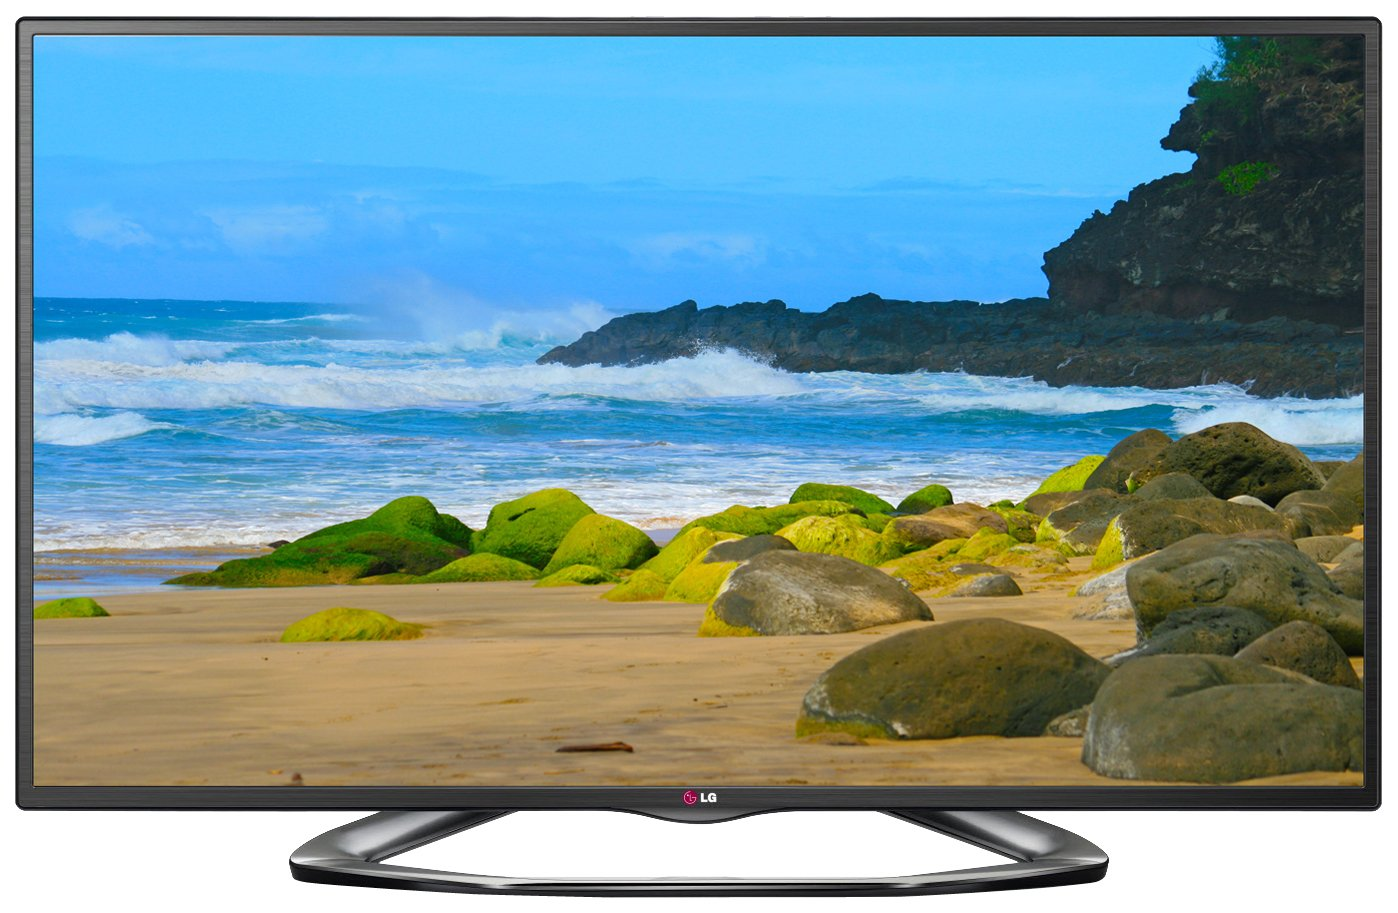 LG-Electronics-47LA6200-47-Inch-Cinema-3D-1080p-120Hz-LED-LCD-HDTV-with-Smart-TV-and-Four-Pairs-of-3D-Glasses-2013-Model-